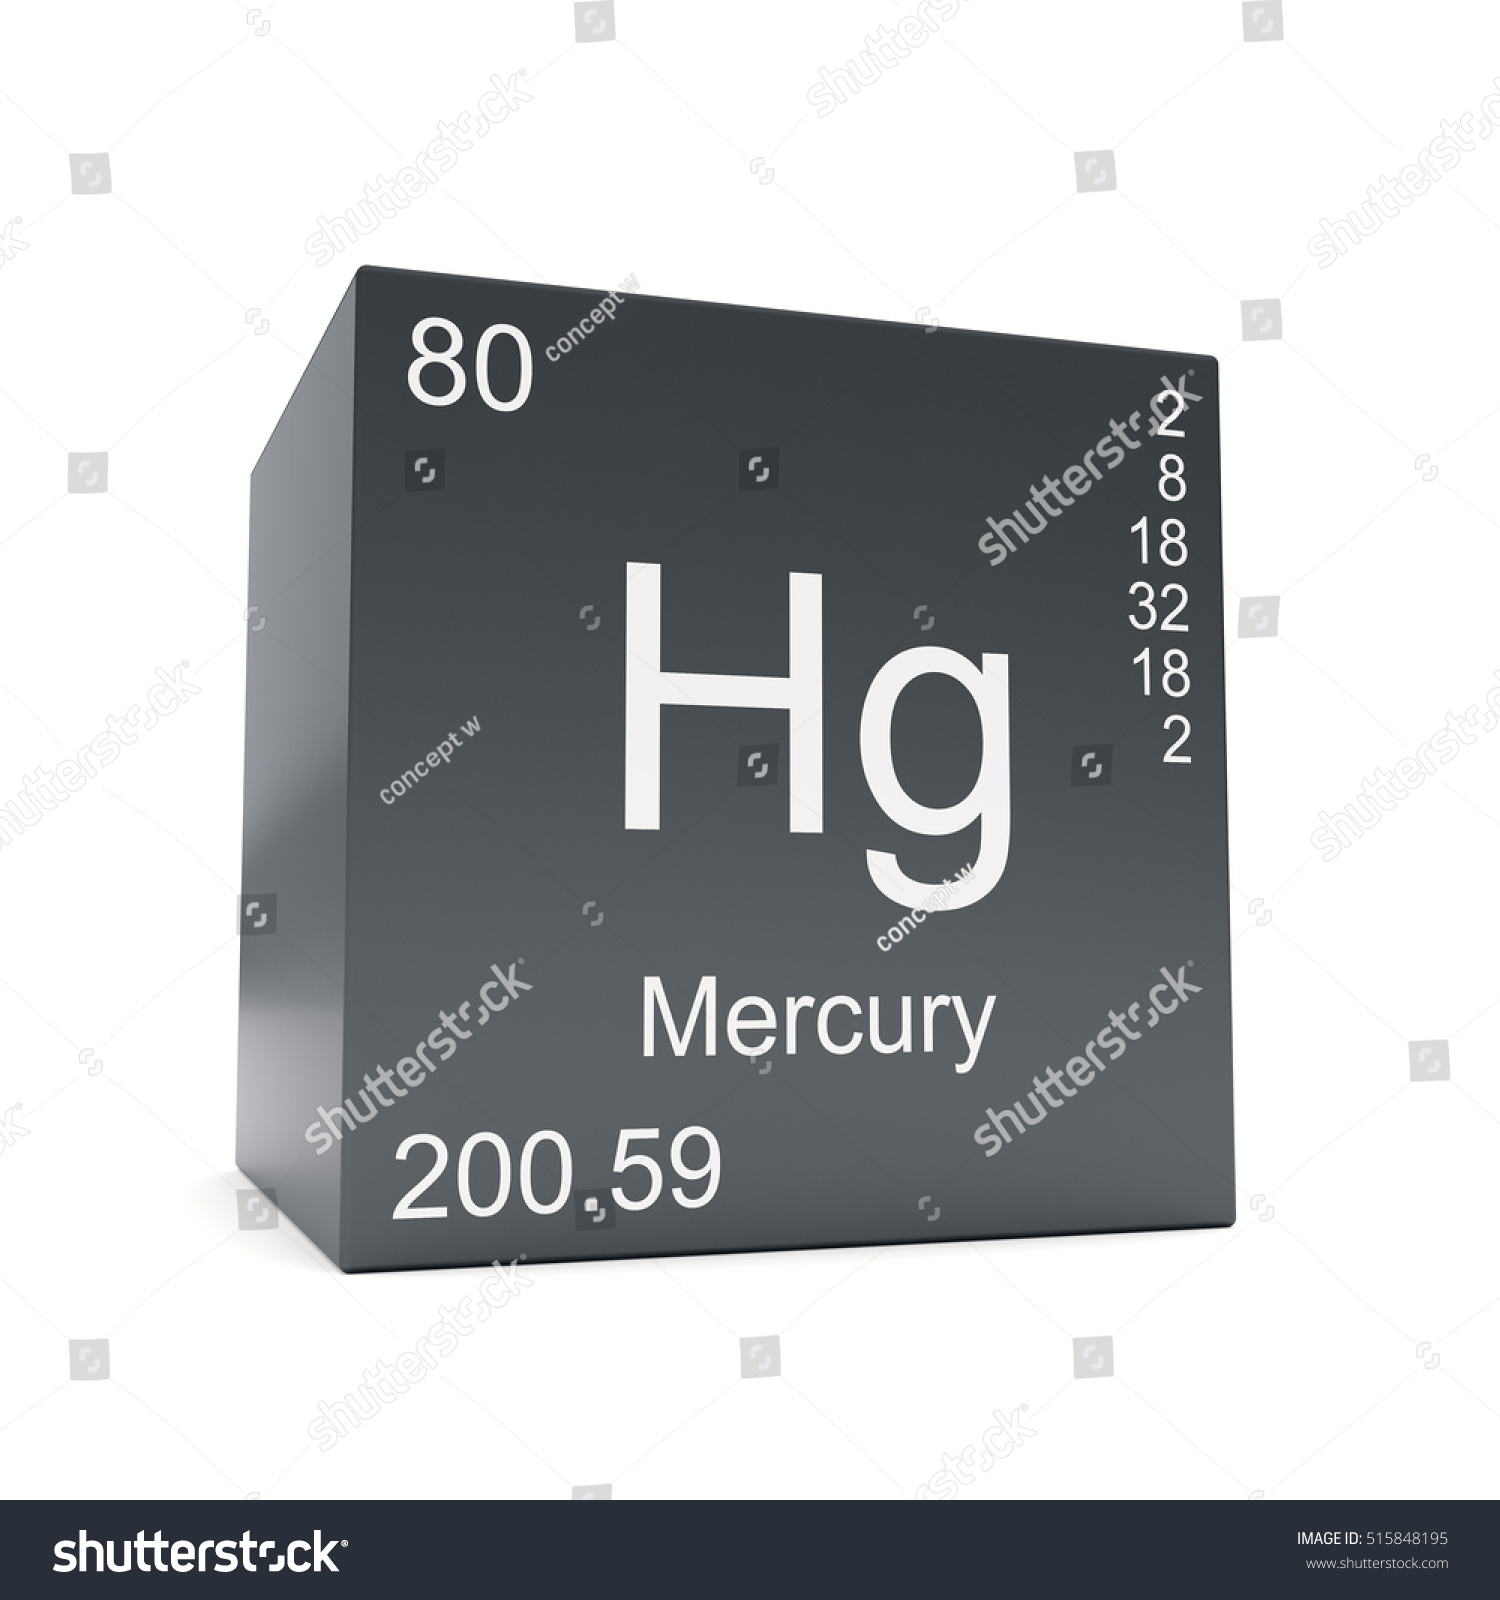 Mercury chemical element symbol periodic table stock illustration mercury chemical element symbol from the periodic table displayed on black cube 3d render gamestrikefo Images